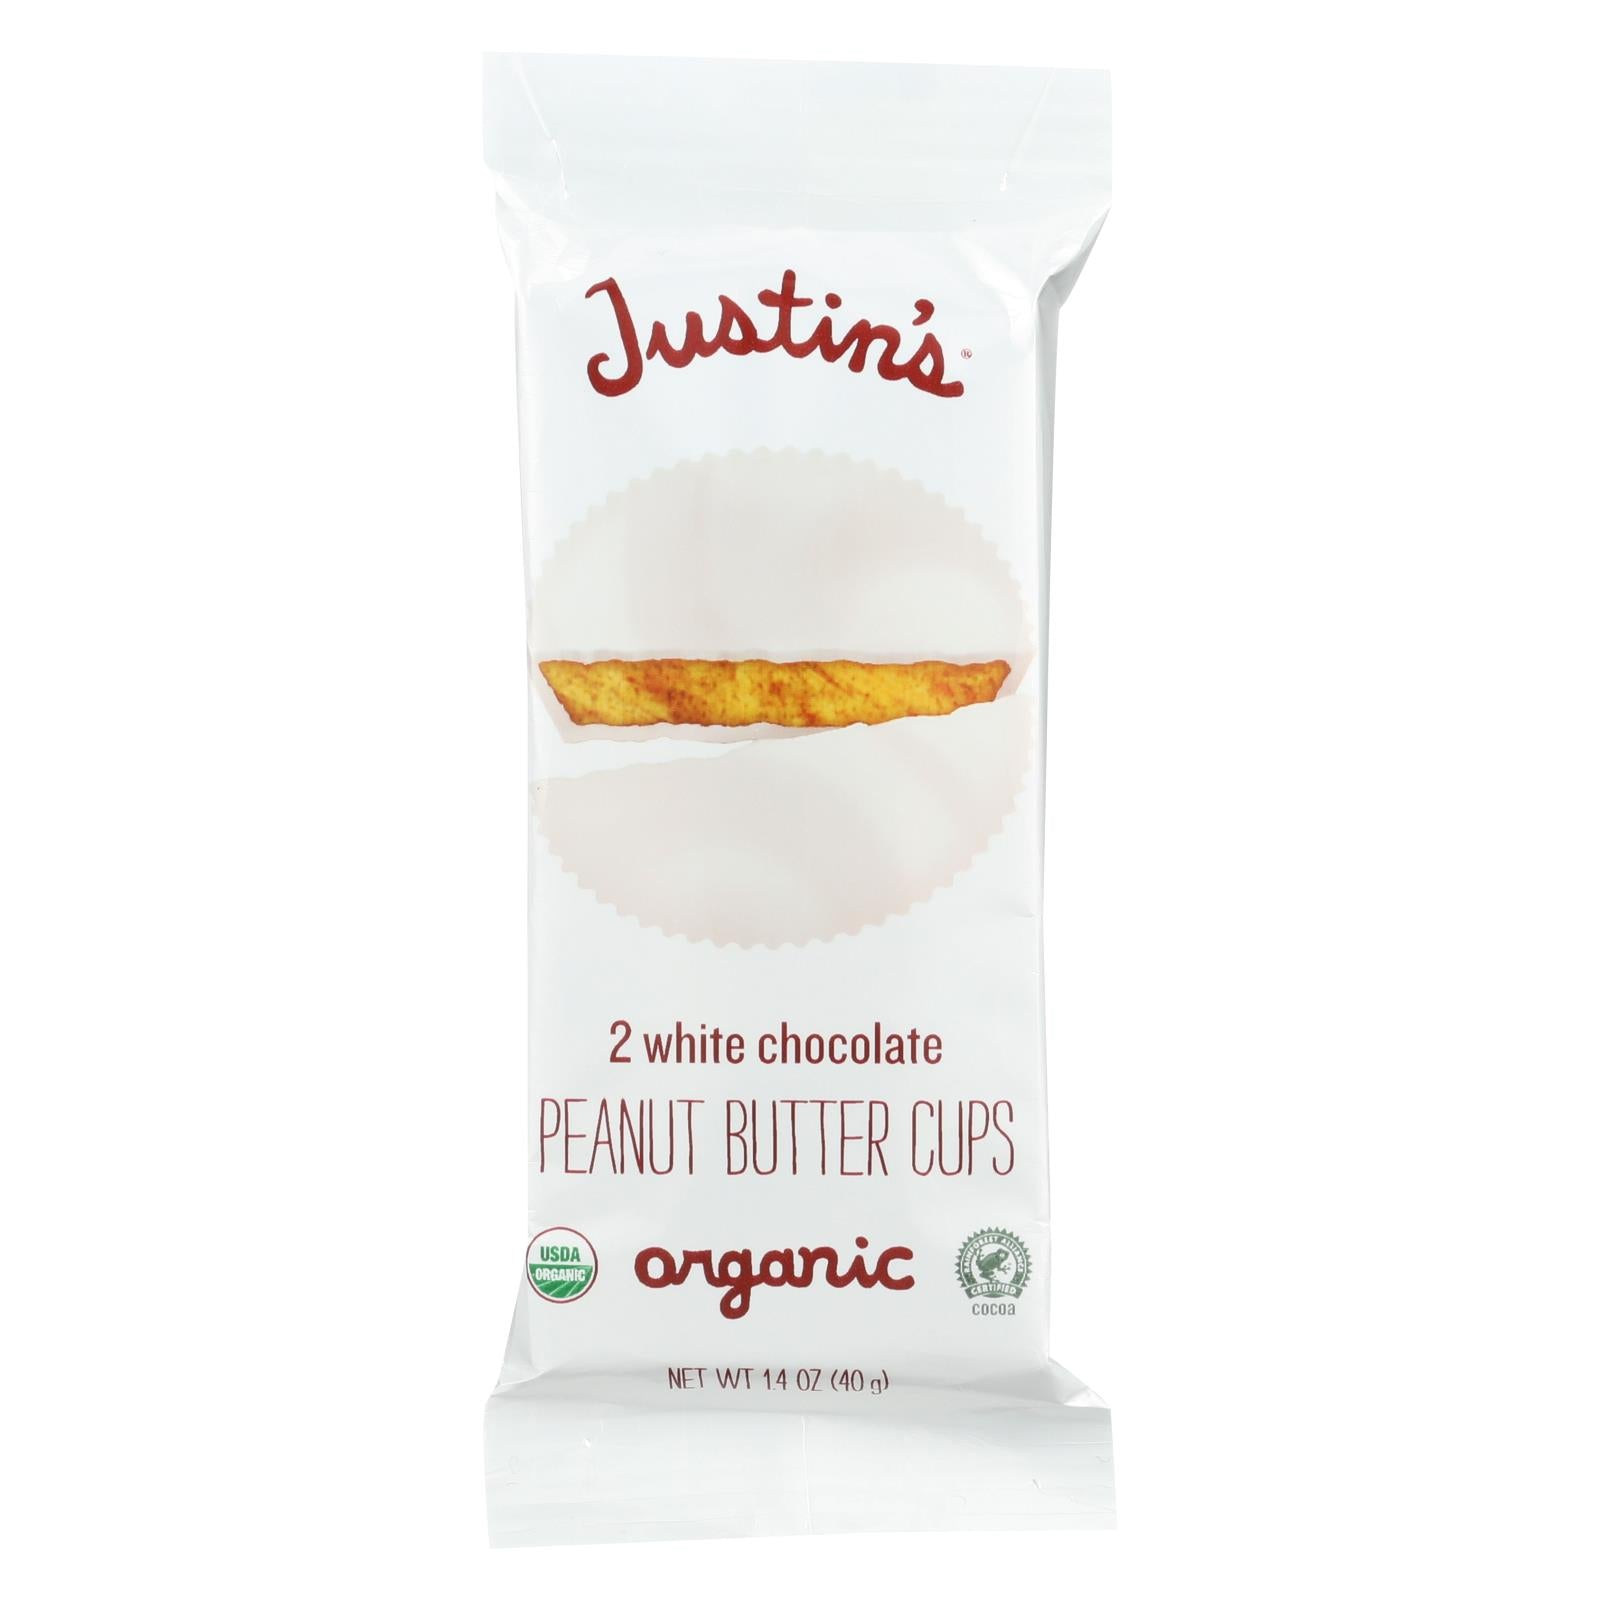 Justin's Nut Butter Organic Peanut Butter Cups White Chocolate 1.4 Oz Case Of 12 HG1351683